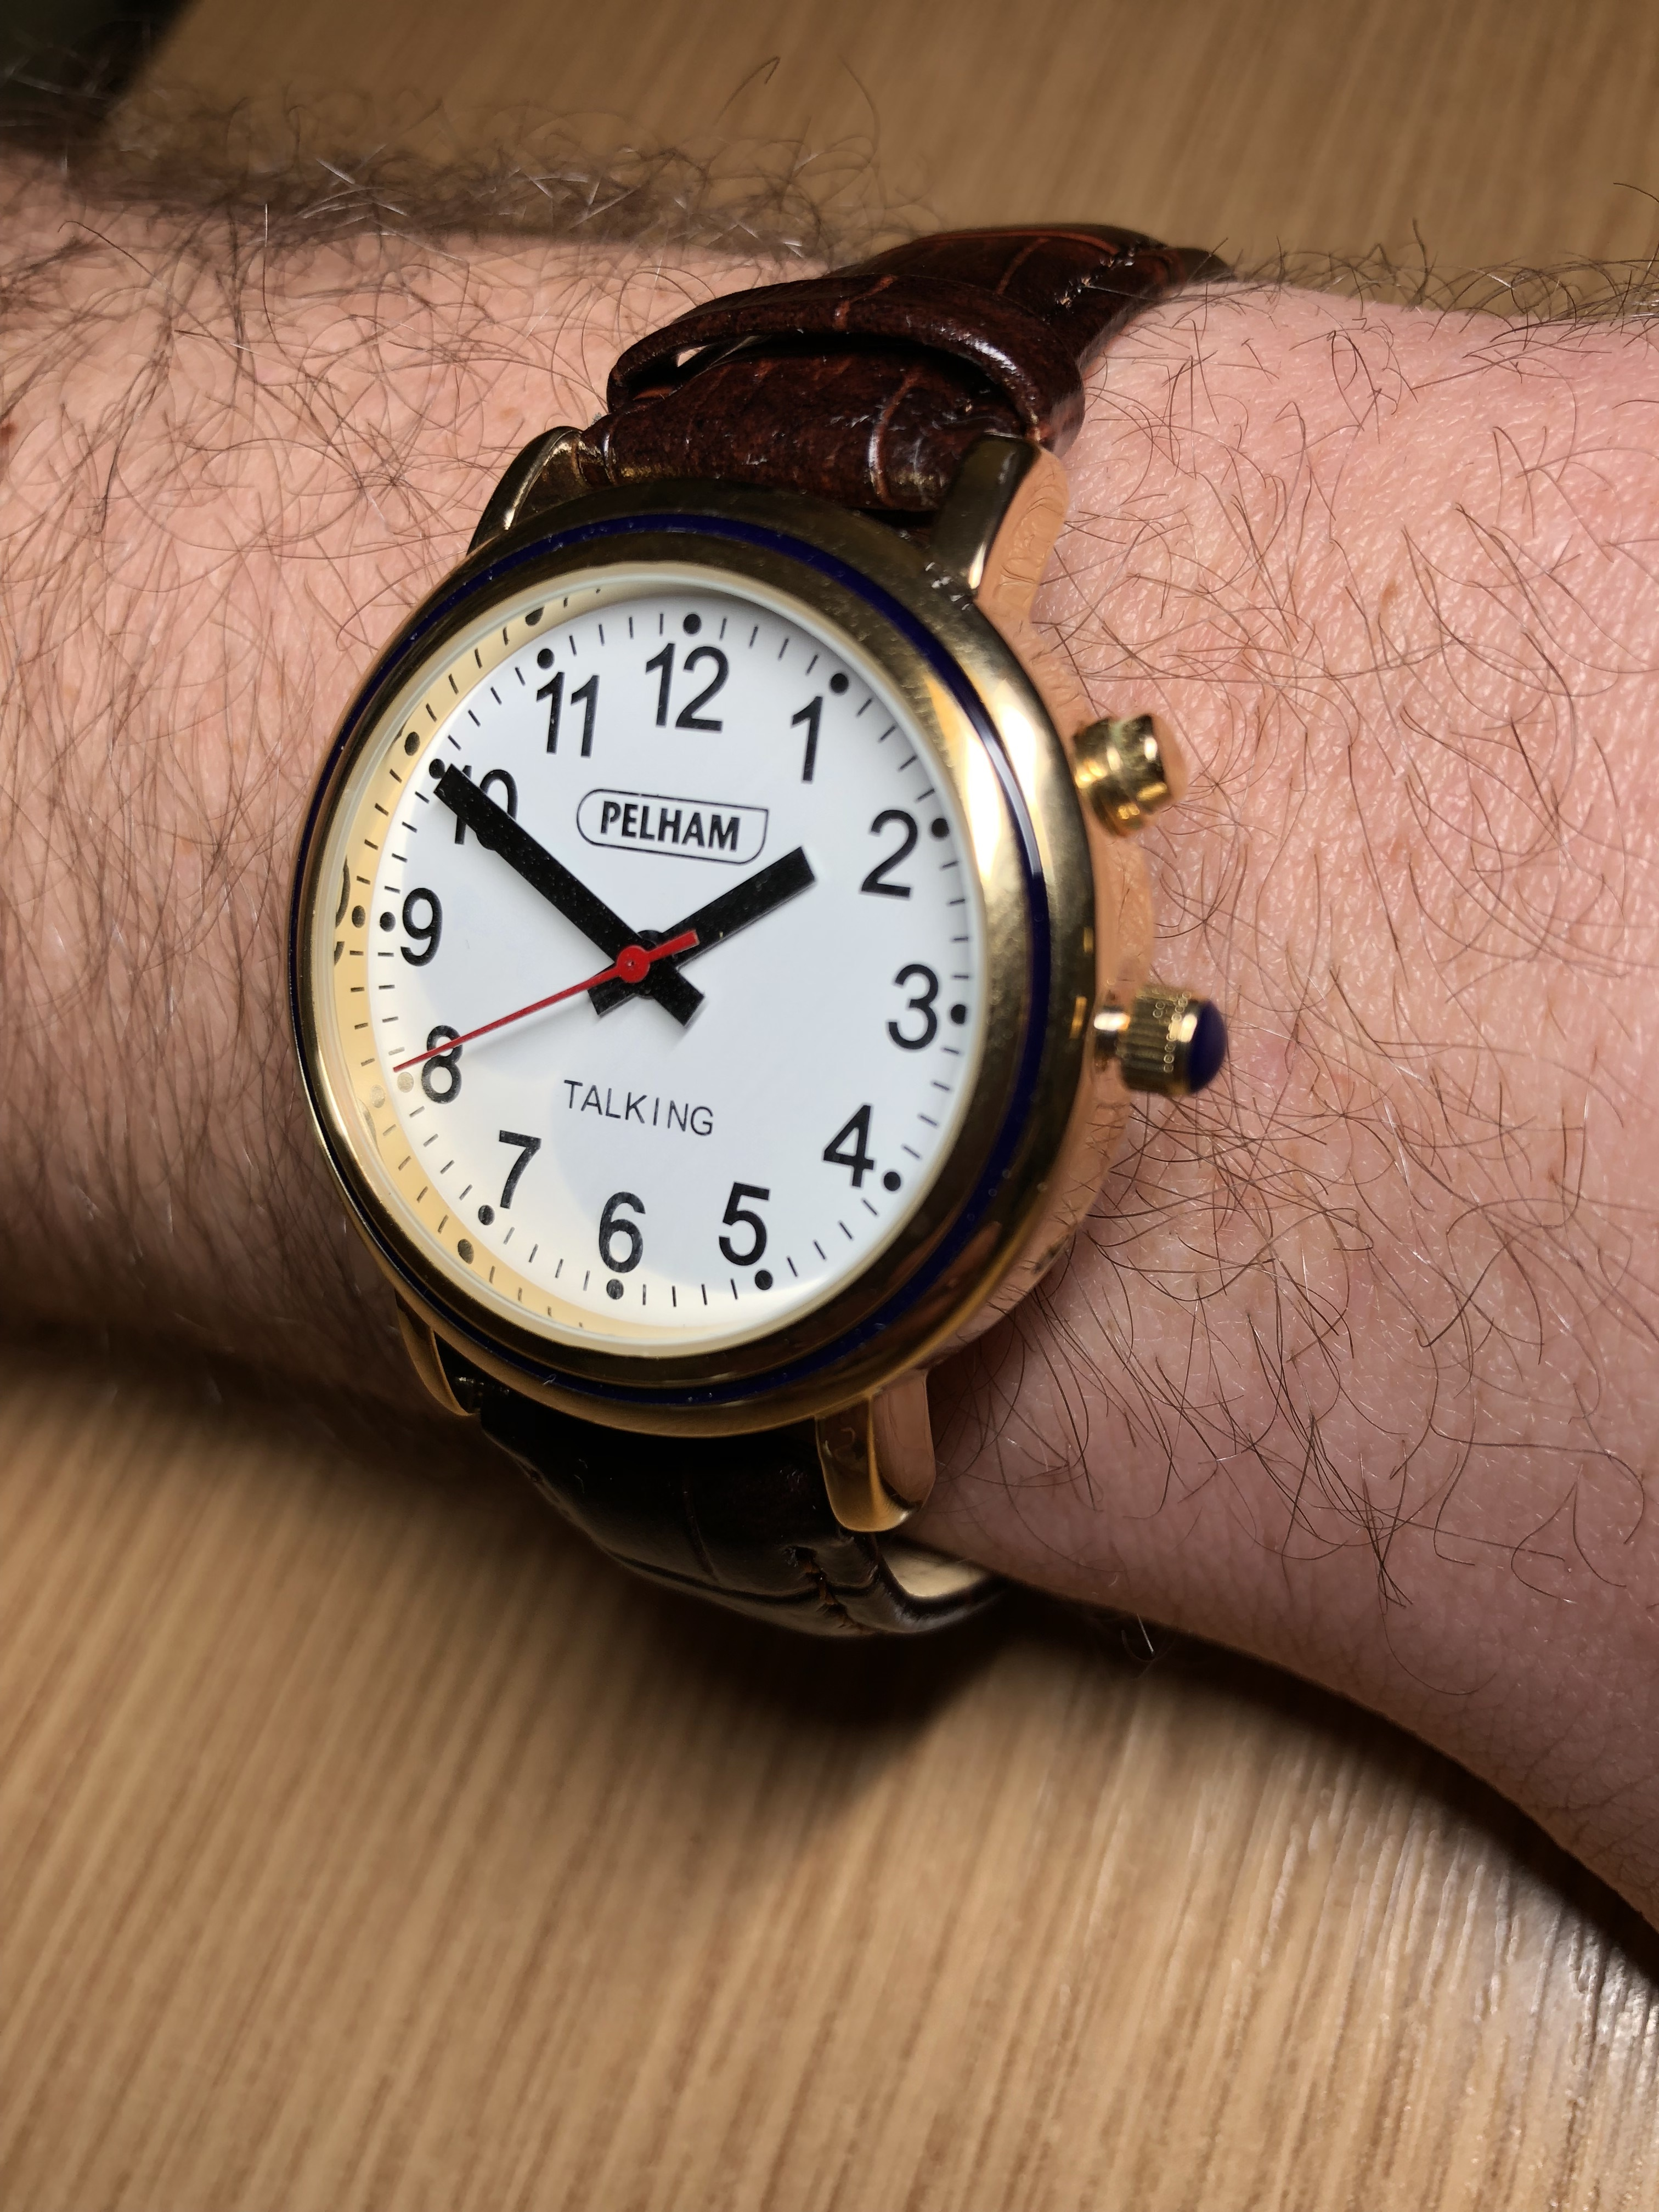 img these excellent are underrated blinds revue service the watch blind one watches brands there out most of for think guy i calibre